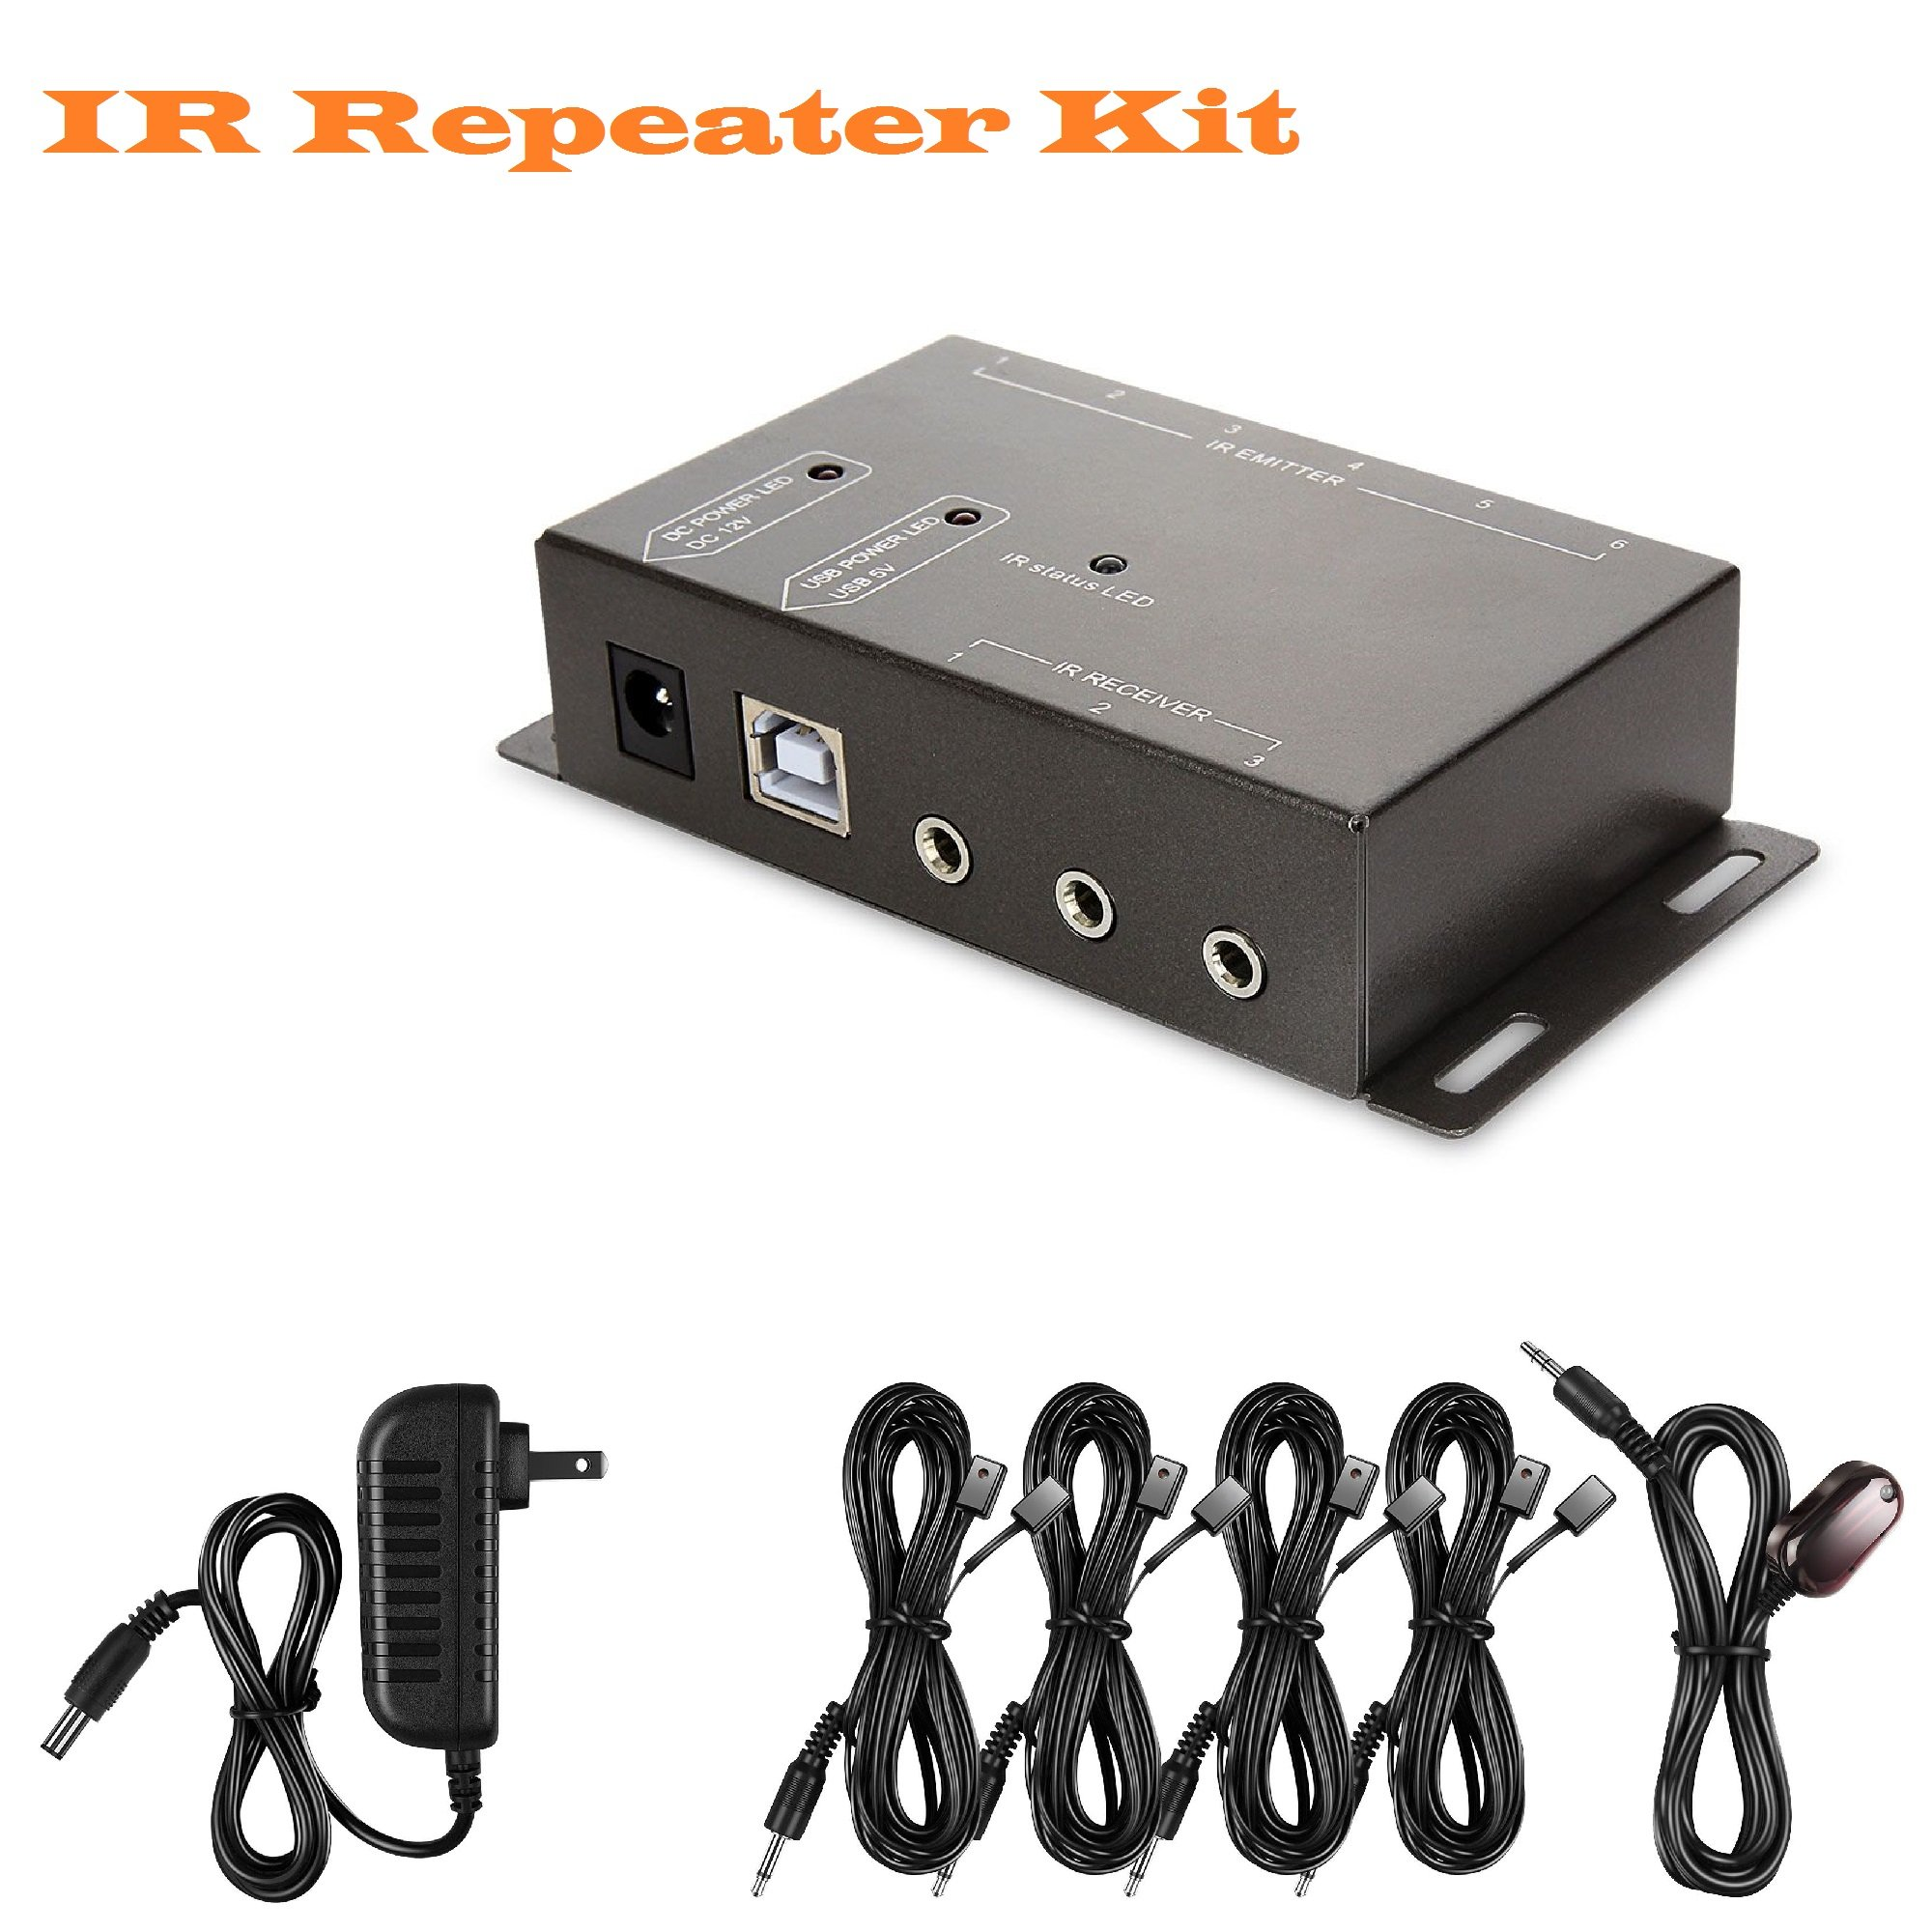 Amanka Infrared (IR) Remote Control Repeater Remote Control Extender Kit to Control up to 8 Hidden A/V Devices (Black)